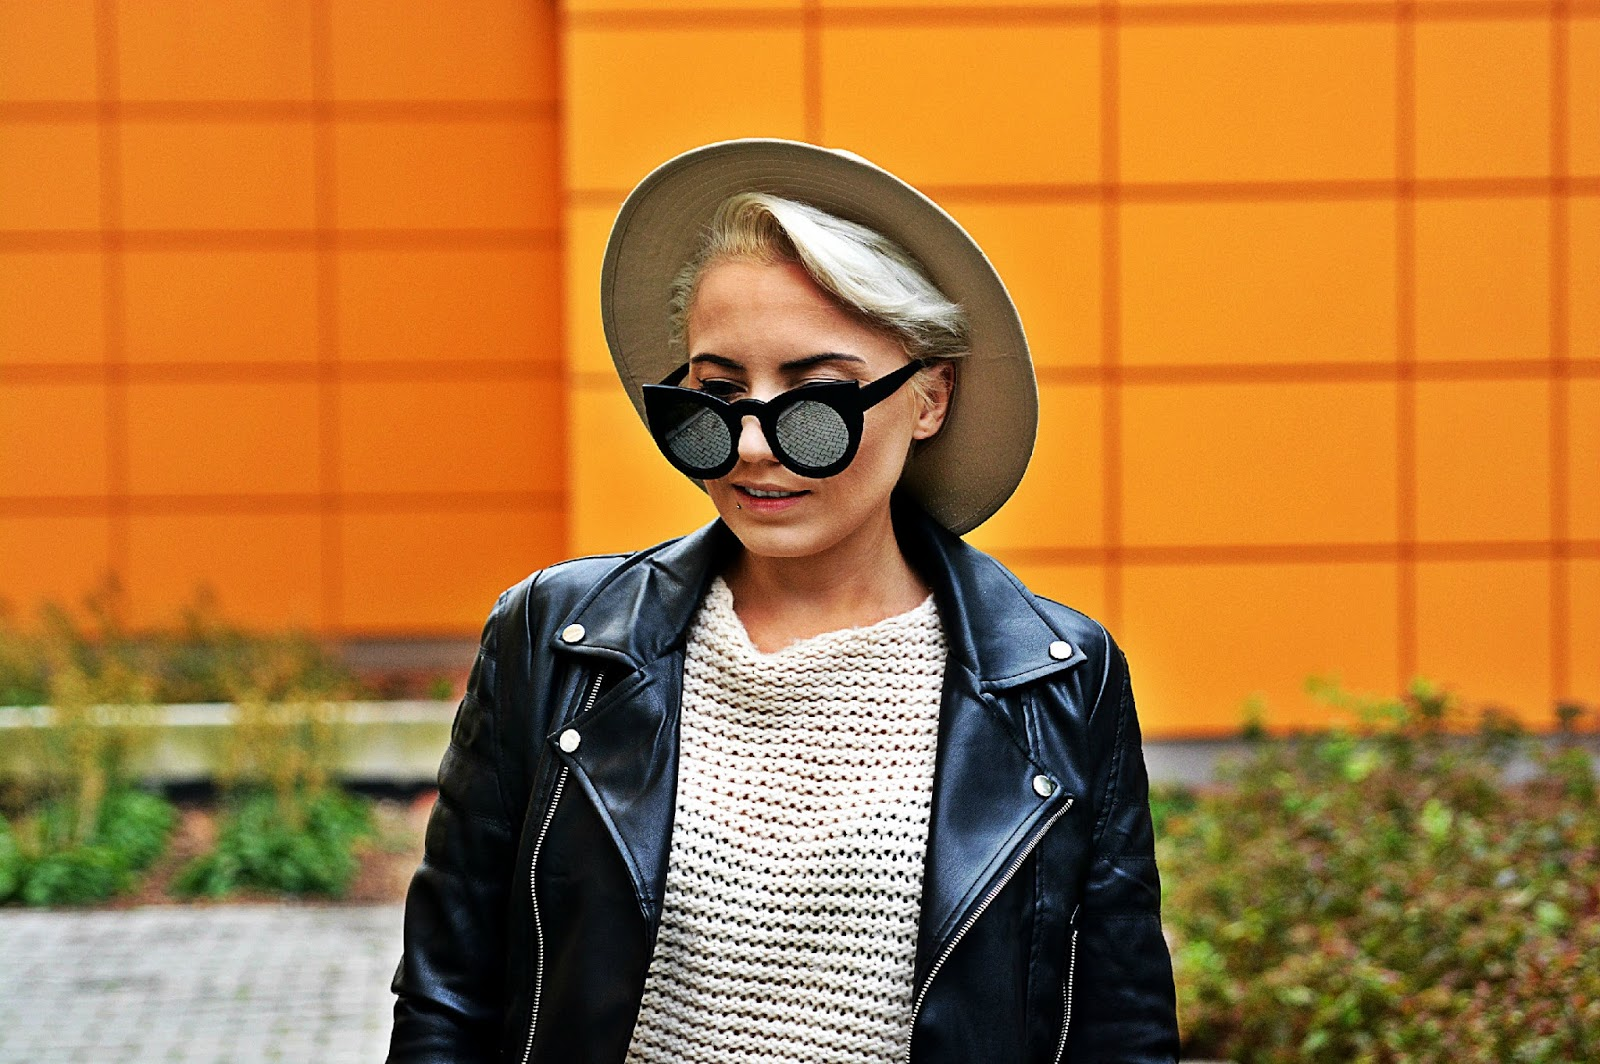 high_waist_pants_black_biker_jacket_beige_hat_2